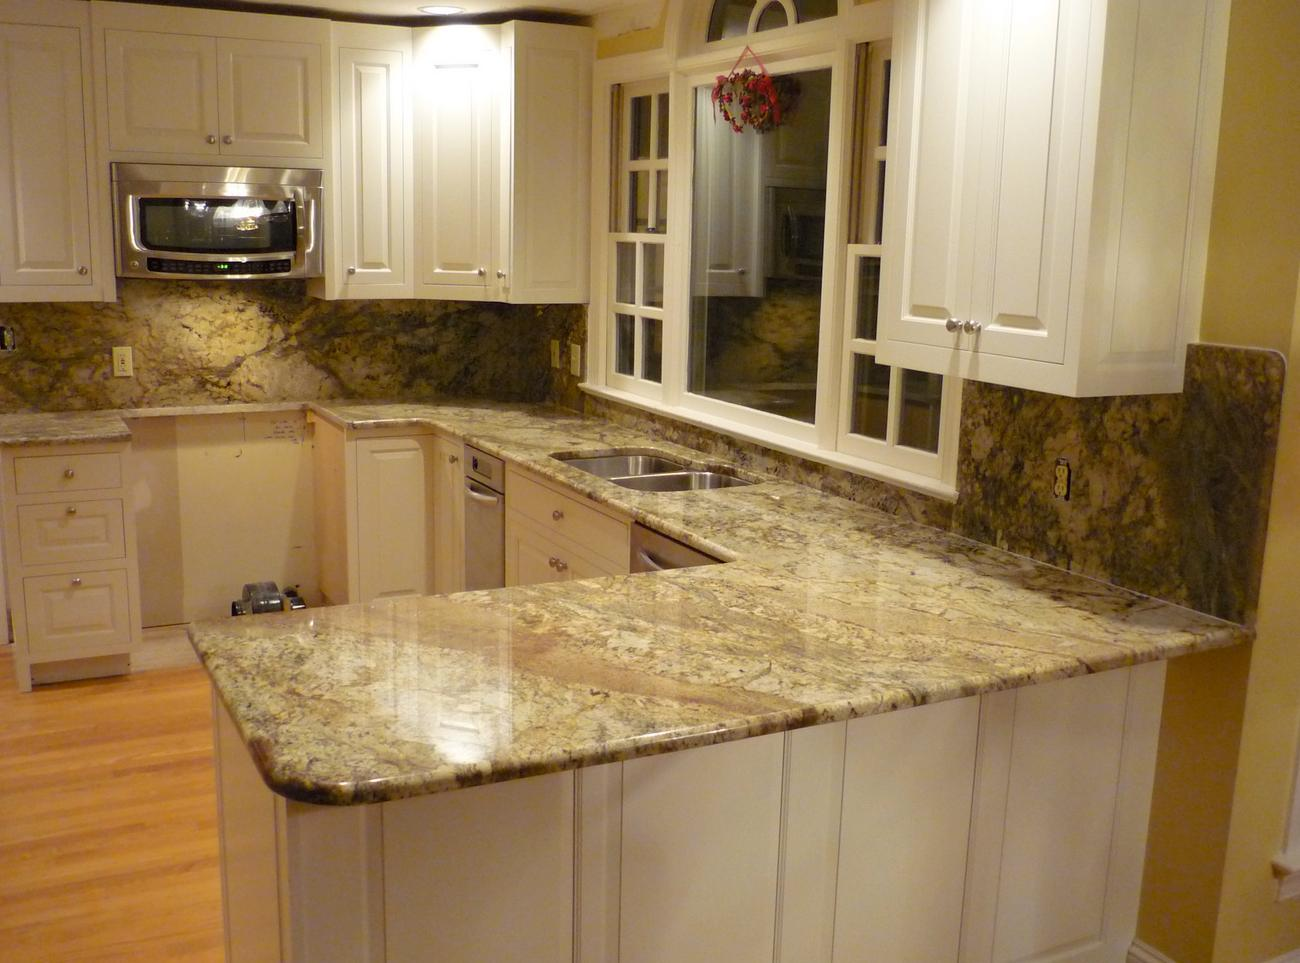 Kitchen cabinets and countertops cost for Cost to update kitchen cabinets and countertops